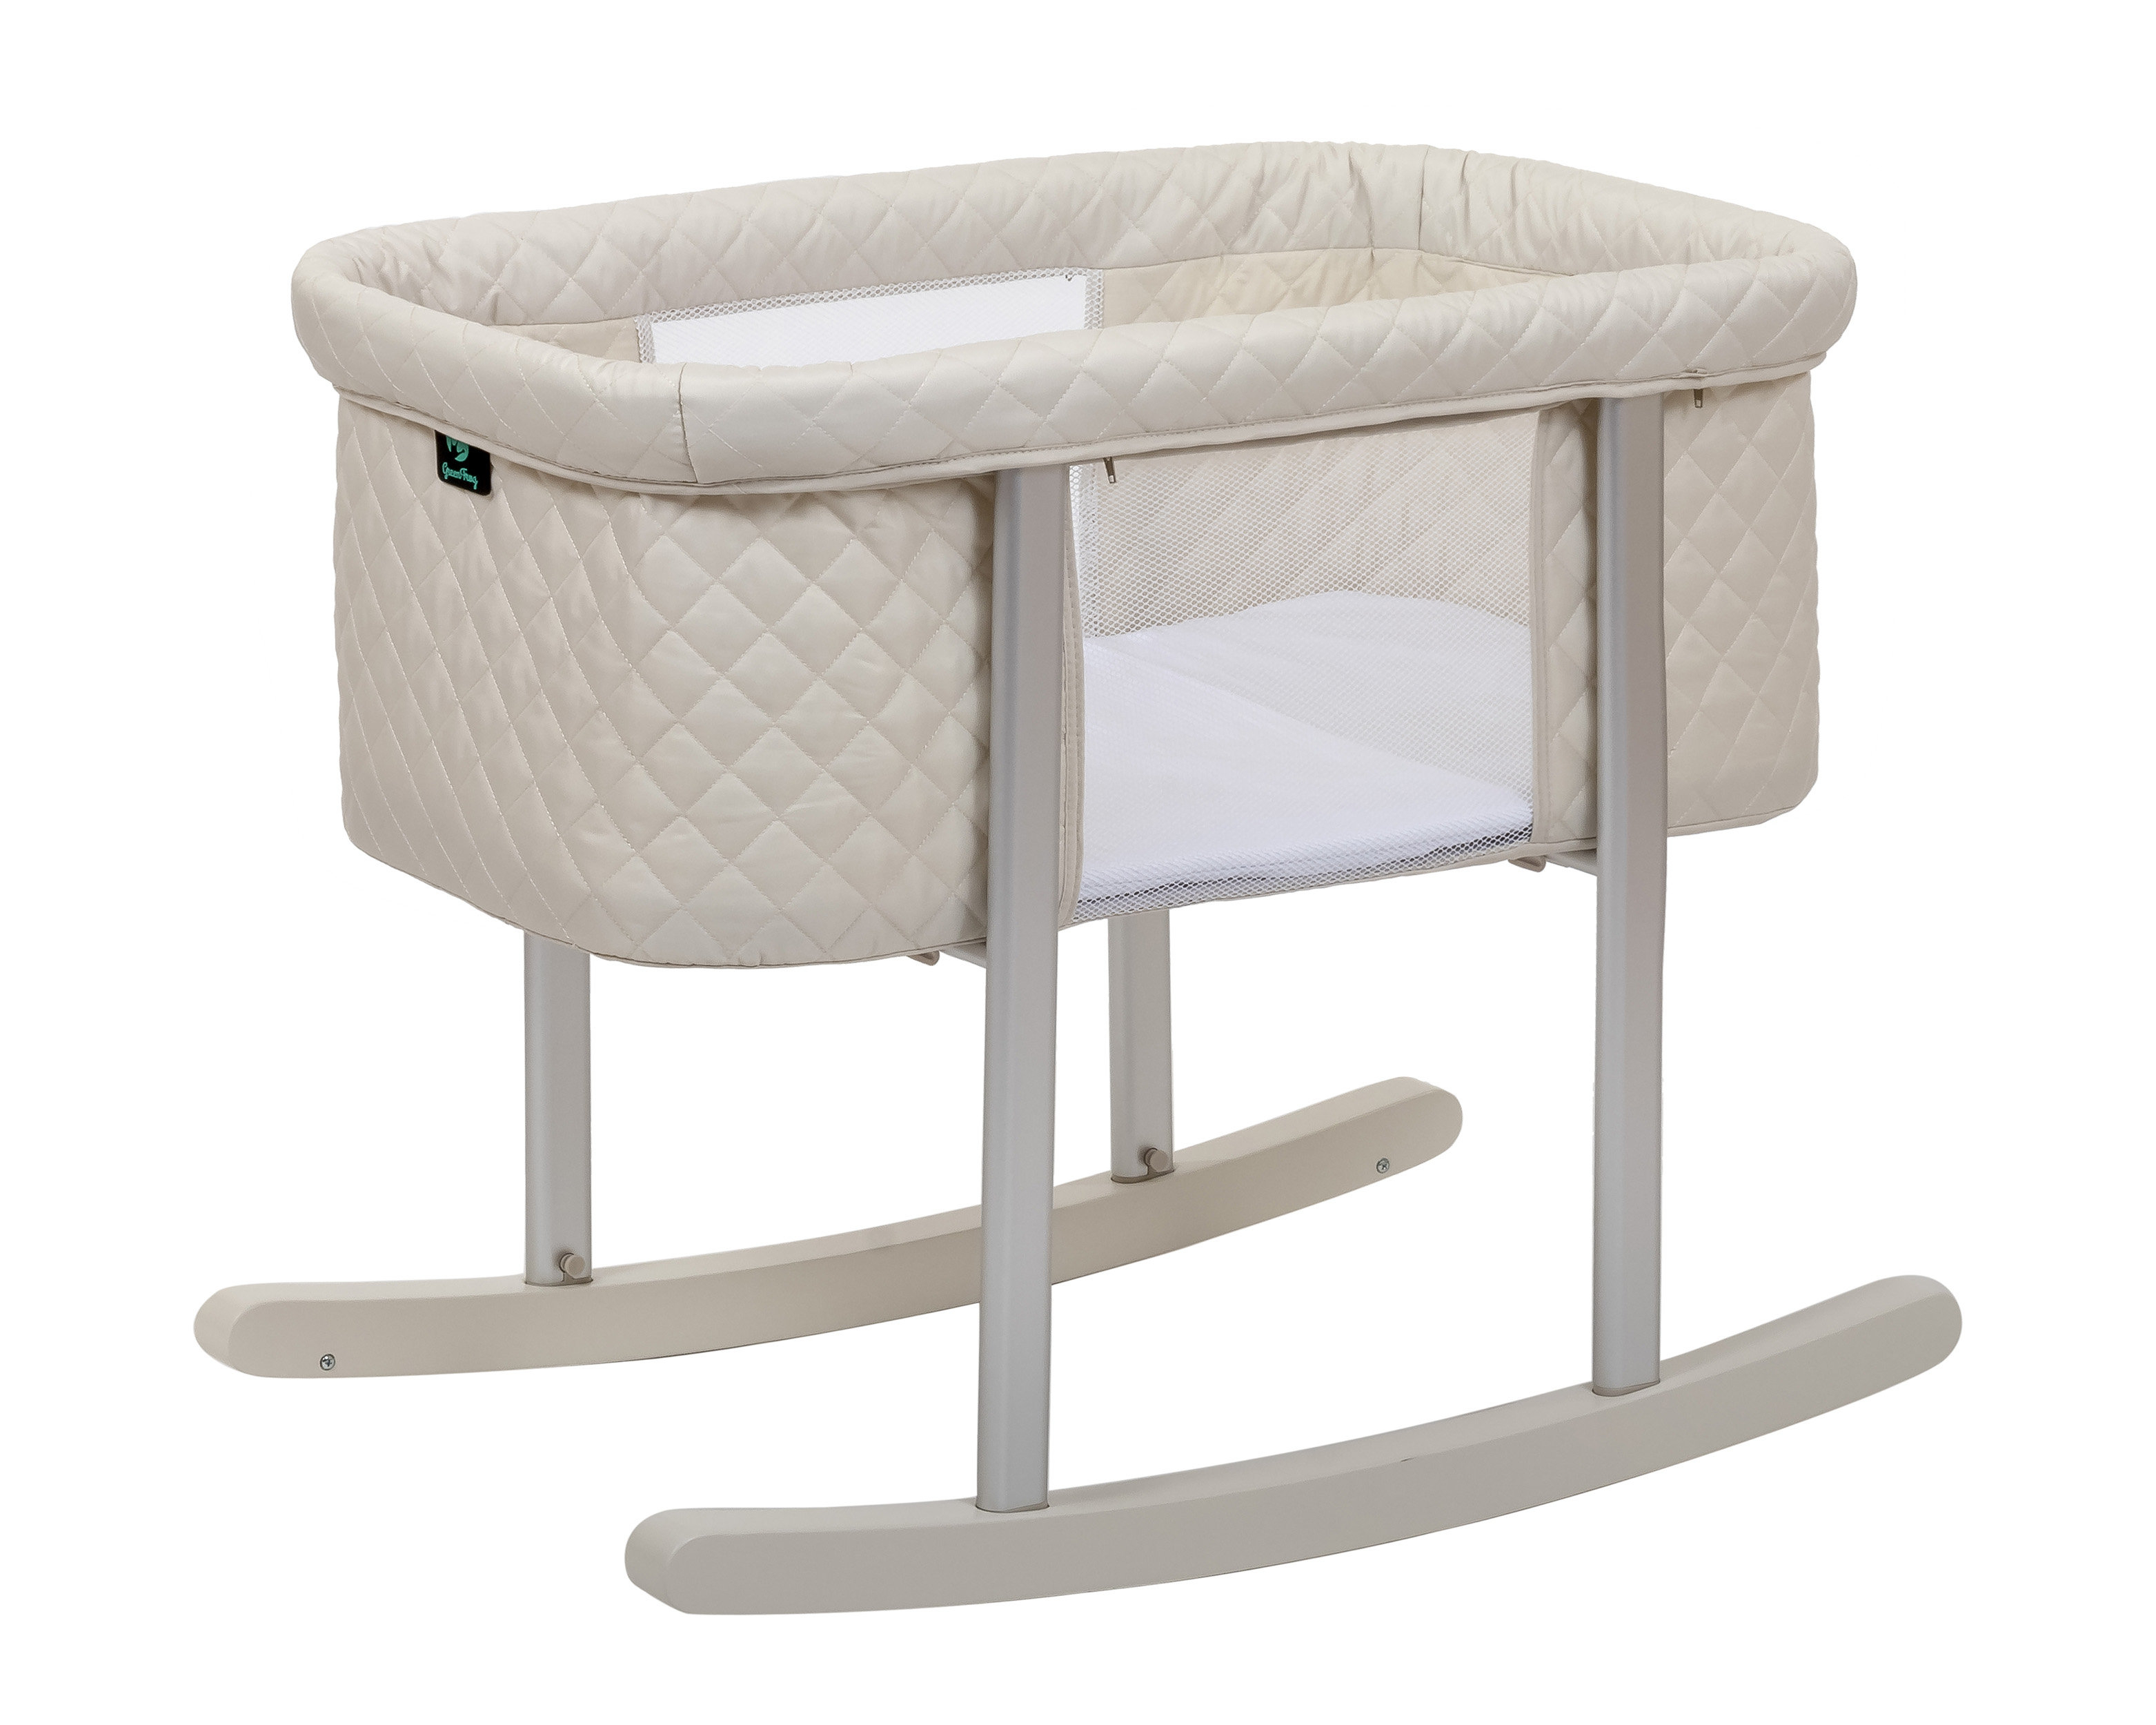 Mack & Milo Gaetan Diamond Baby Bassinet | Wayfair In Bailey Mist Track Arm Skirted Swivel Gliders (Photo 14 of 20)